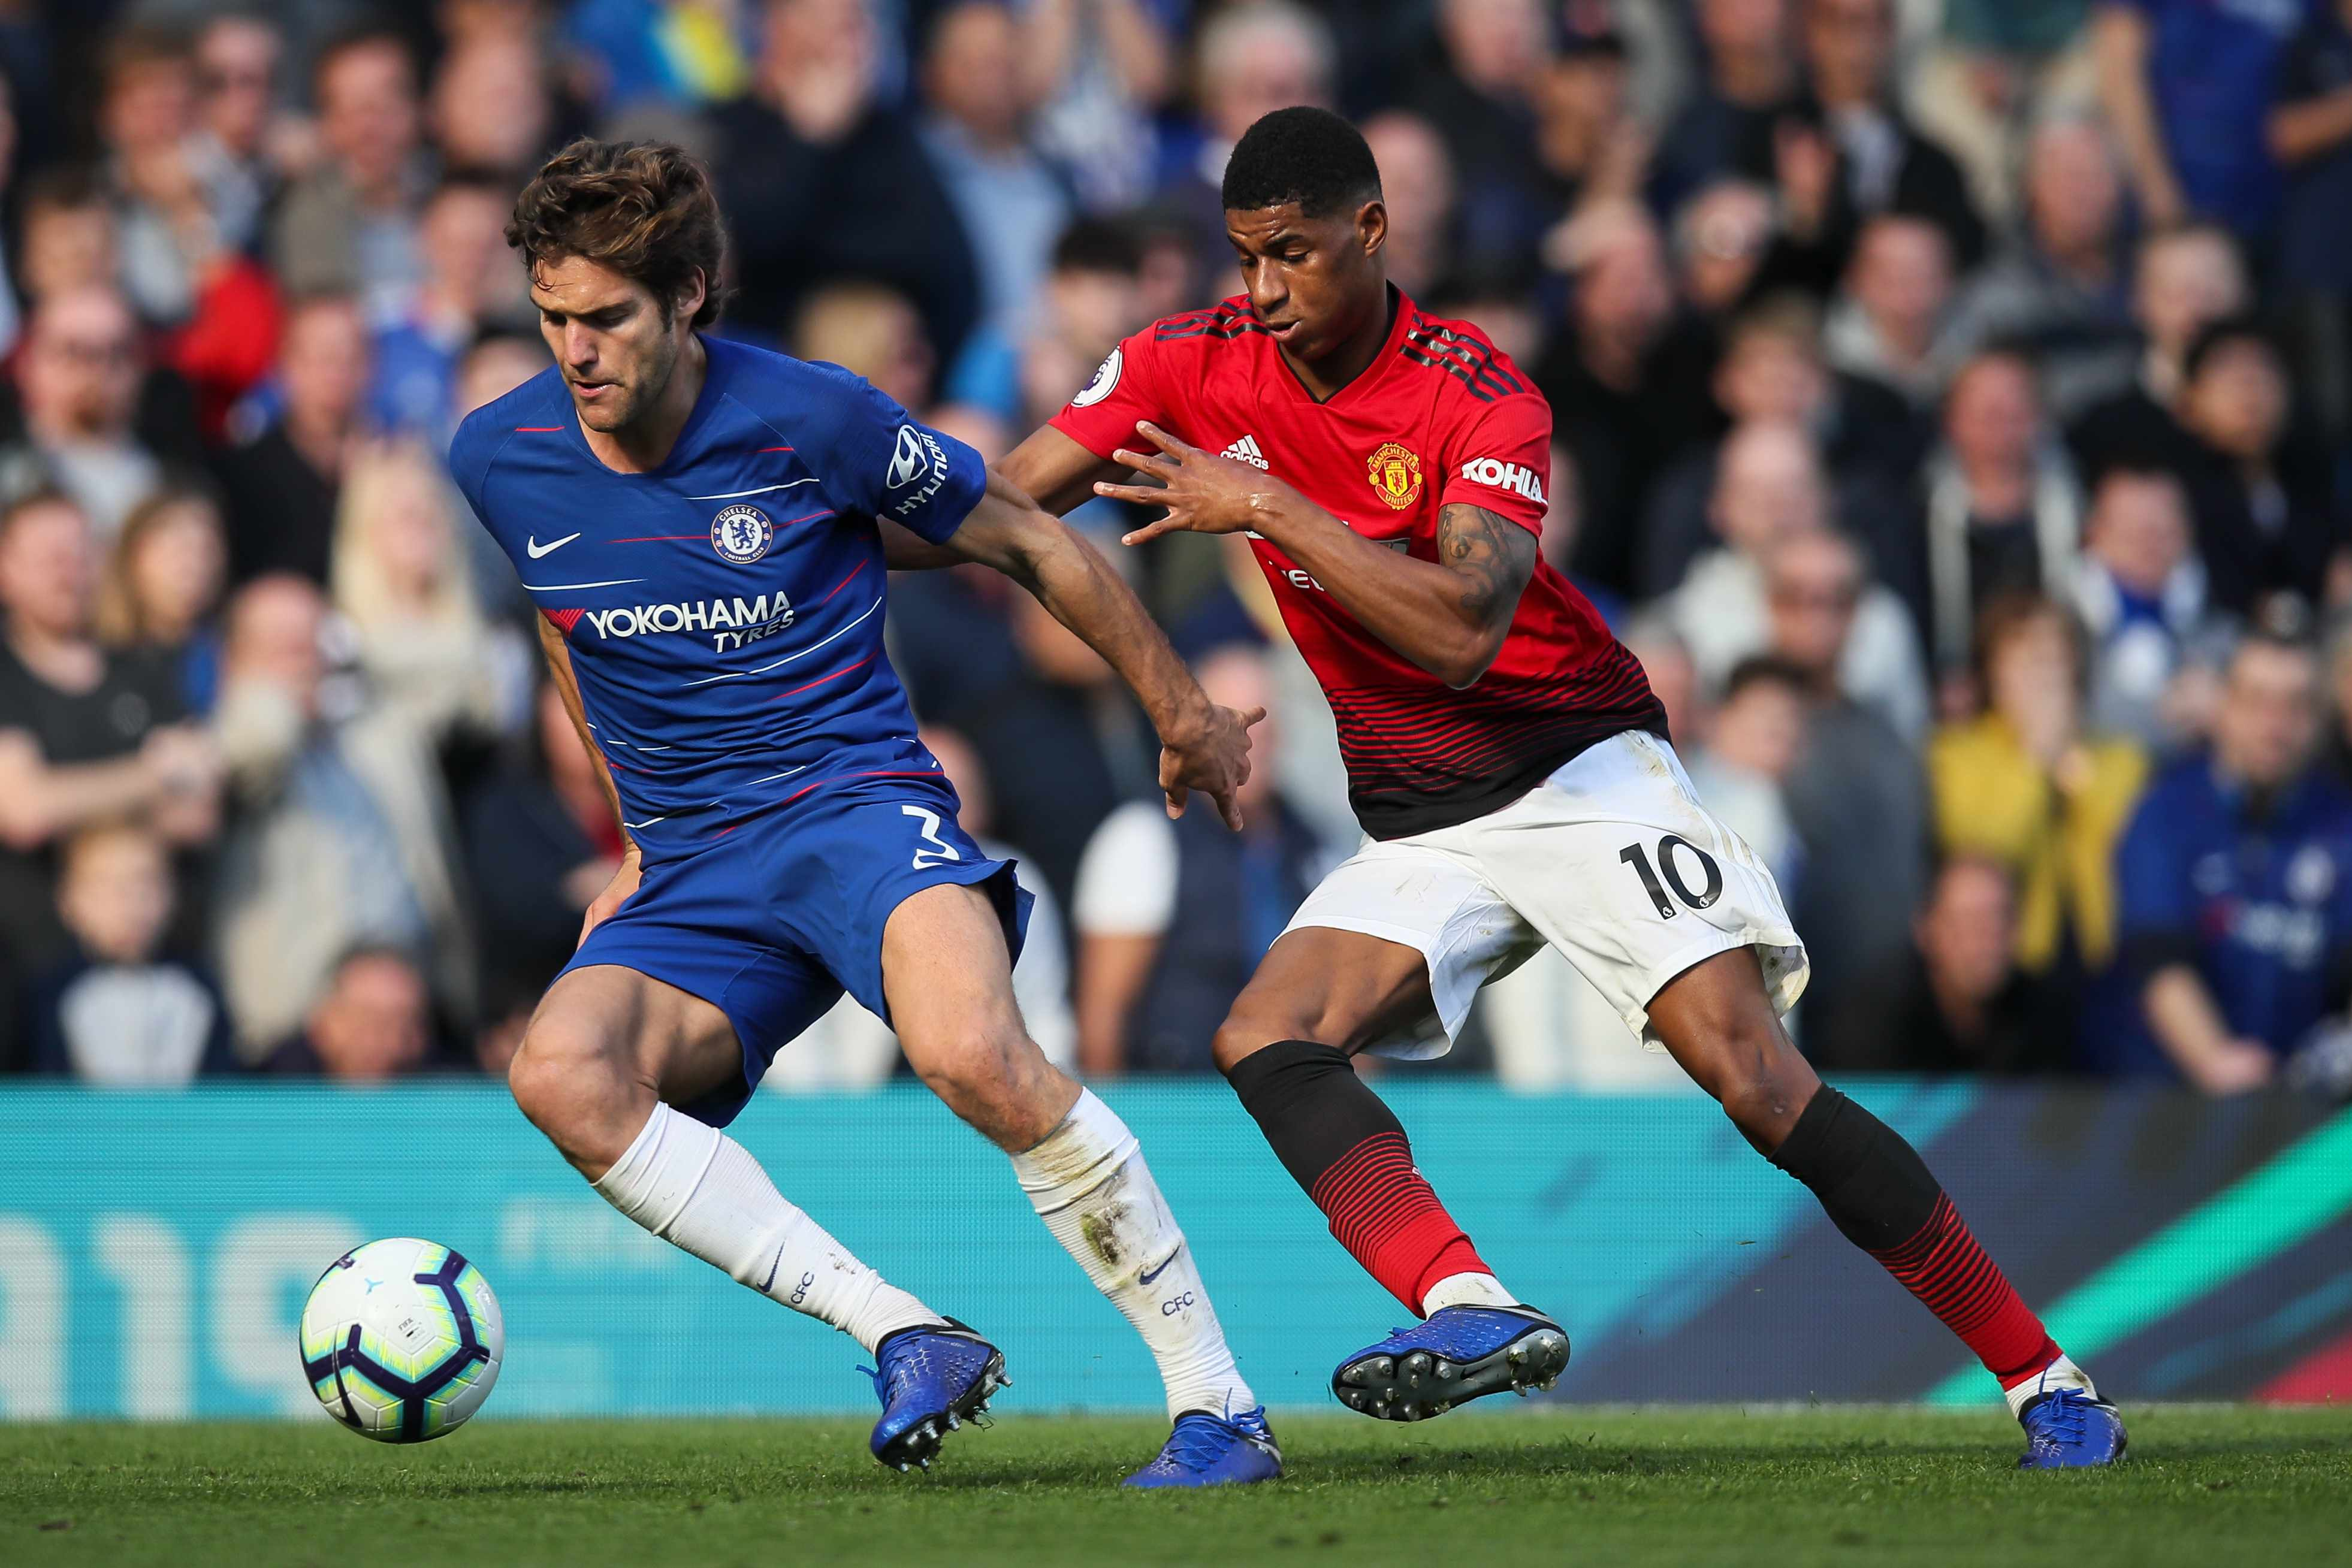 LONDON, ENGLAND - OCTOBER 20: Marcos Alonso of Chelsea and Marcus Rashford of Manchester United during the Premier League match between Chelsea FC and Manchester United at Stamford Bridge on October 20, 2018 in London, United Kingdom. (Photo by Matthew Ashton - AMA/Getty Images)